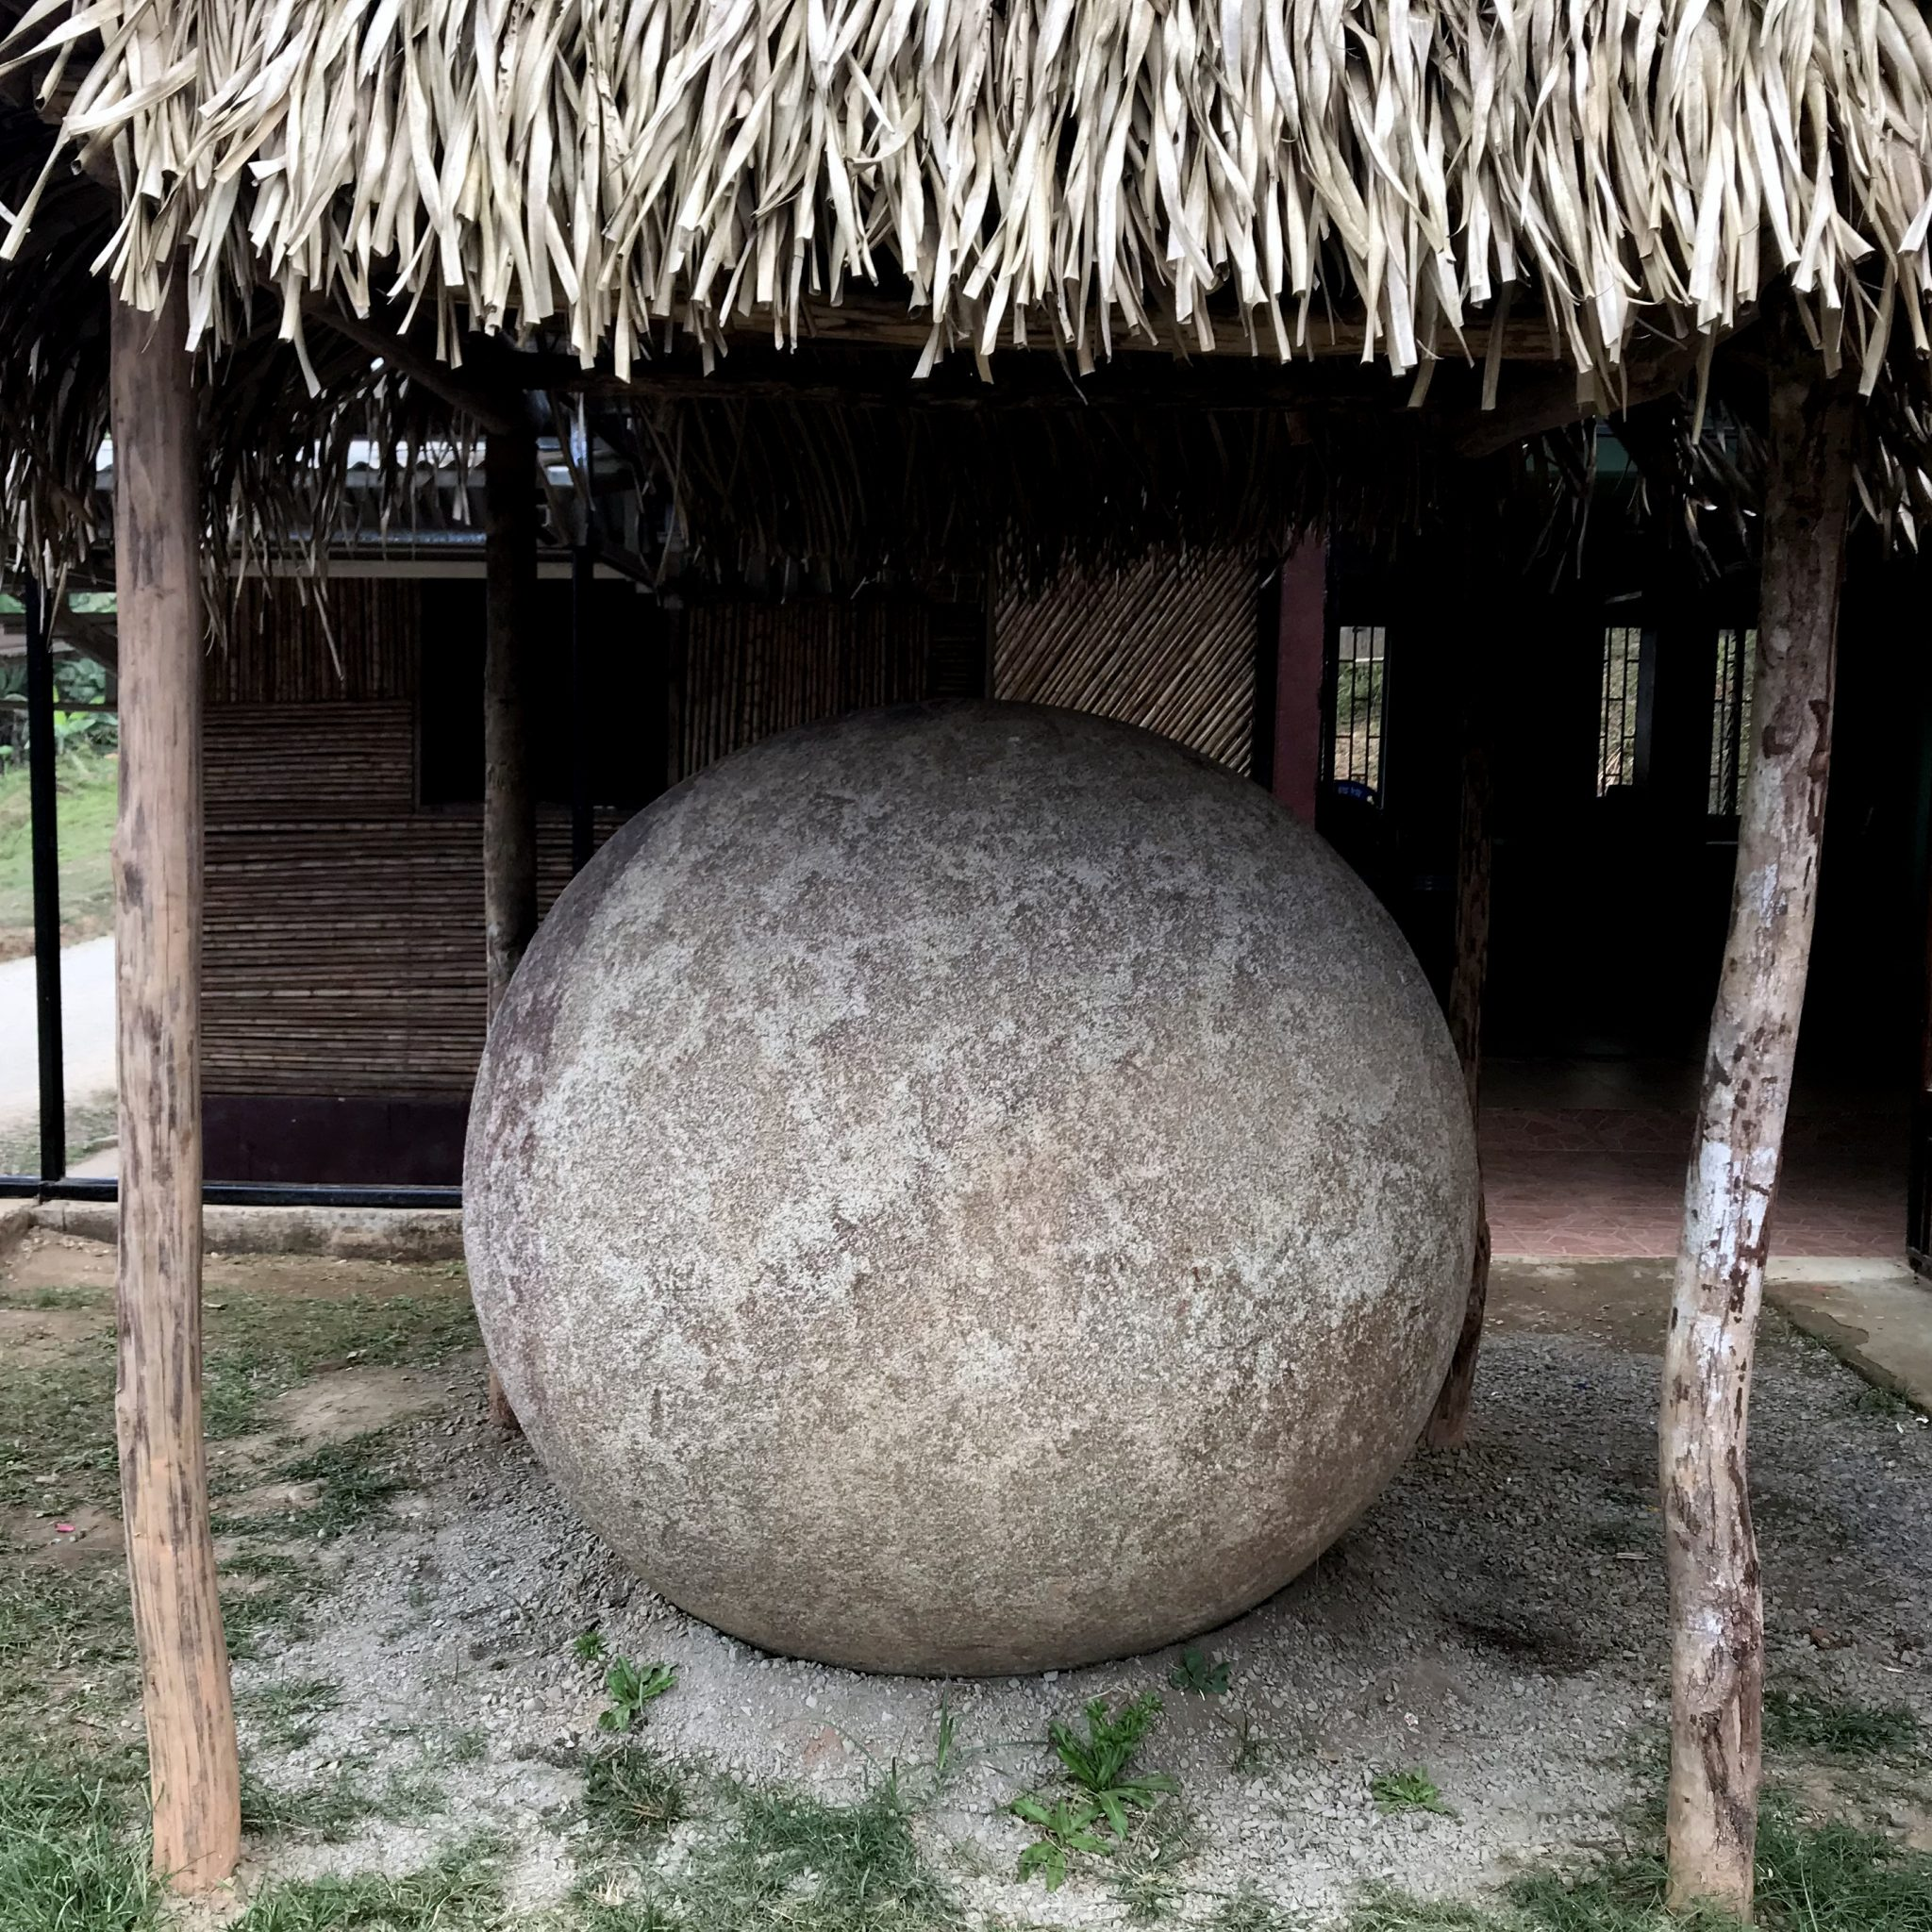 One of Costa Rica's mysterious ancient stone spheres in the heart of the village.